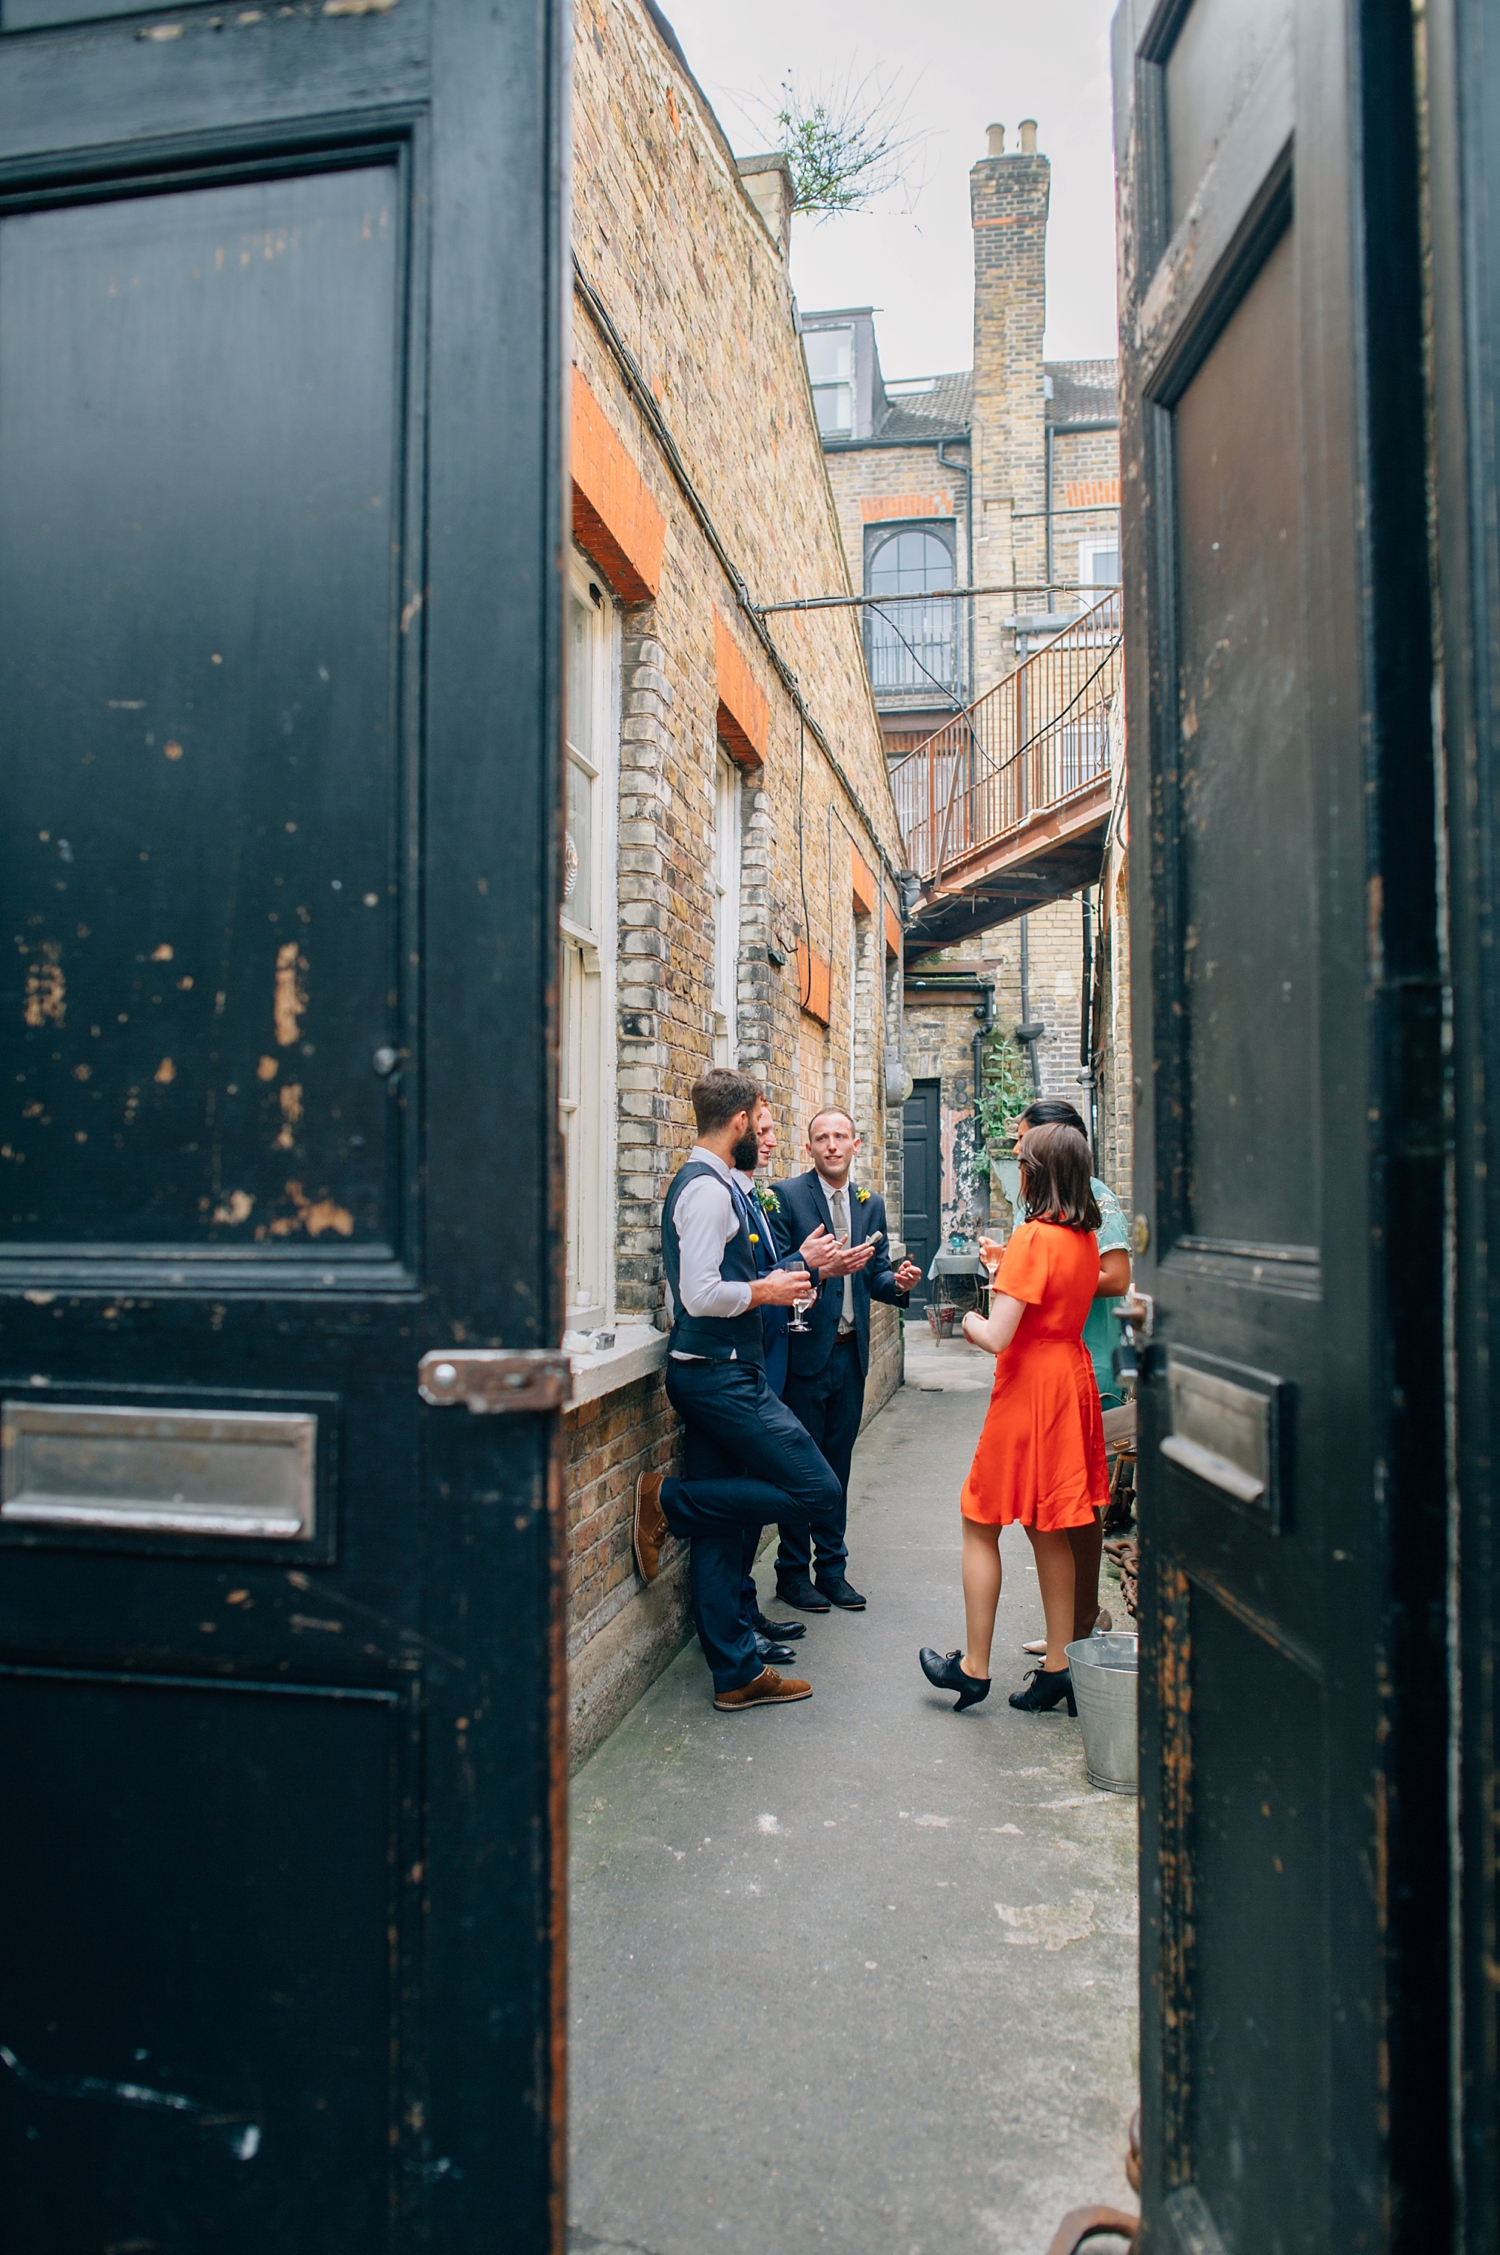 0134-lisa-devine-alternative-wedding-photography-london-hackney-dalston-london-photography-townhall-hotel.JPG